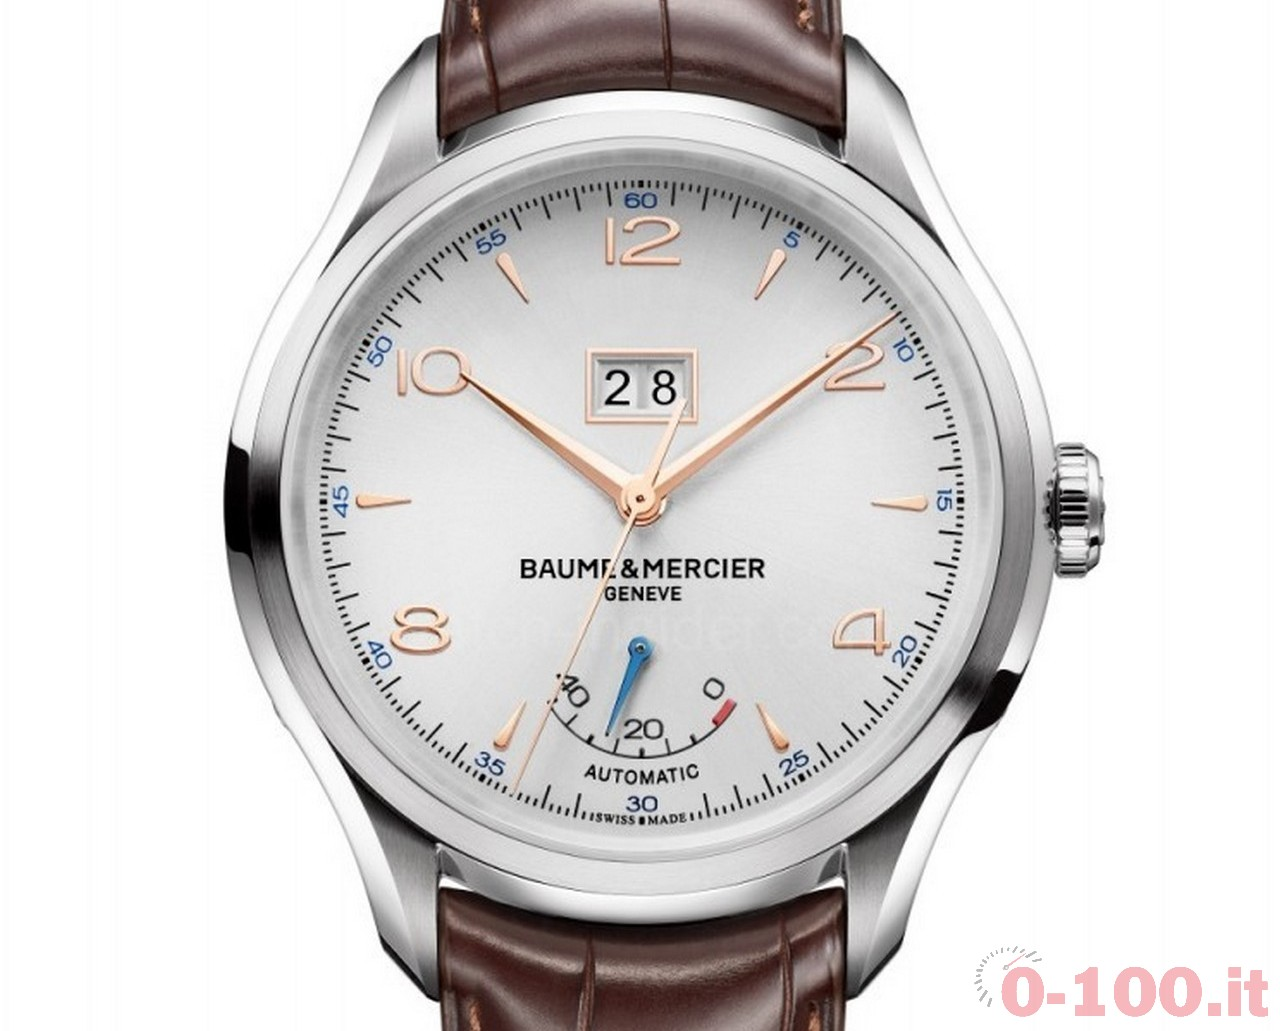 anteprima-sihh-2015-baume-mercier-clifton-big-date-and-power-reserve-ref-m0a10205_0-100_2